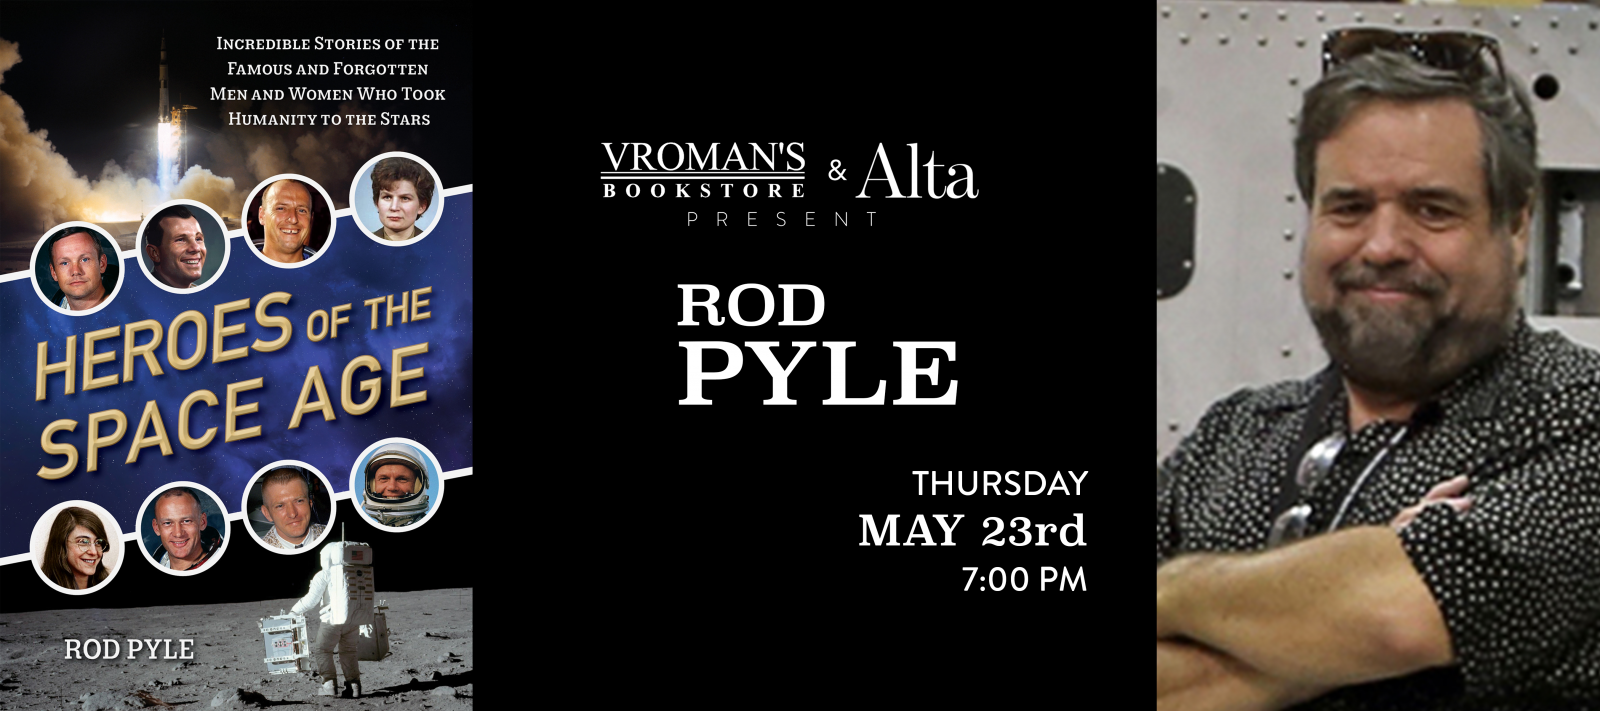 Rod Pyle book signing